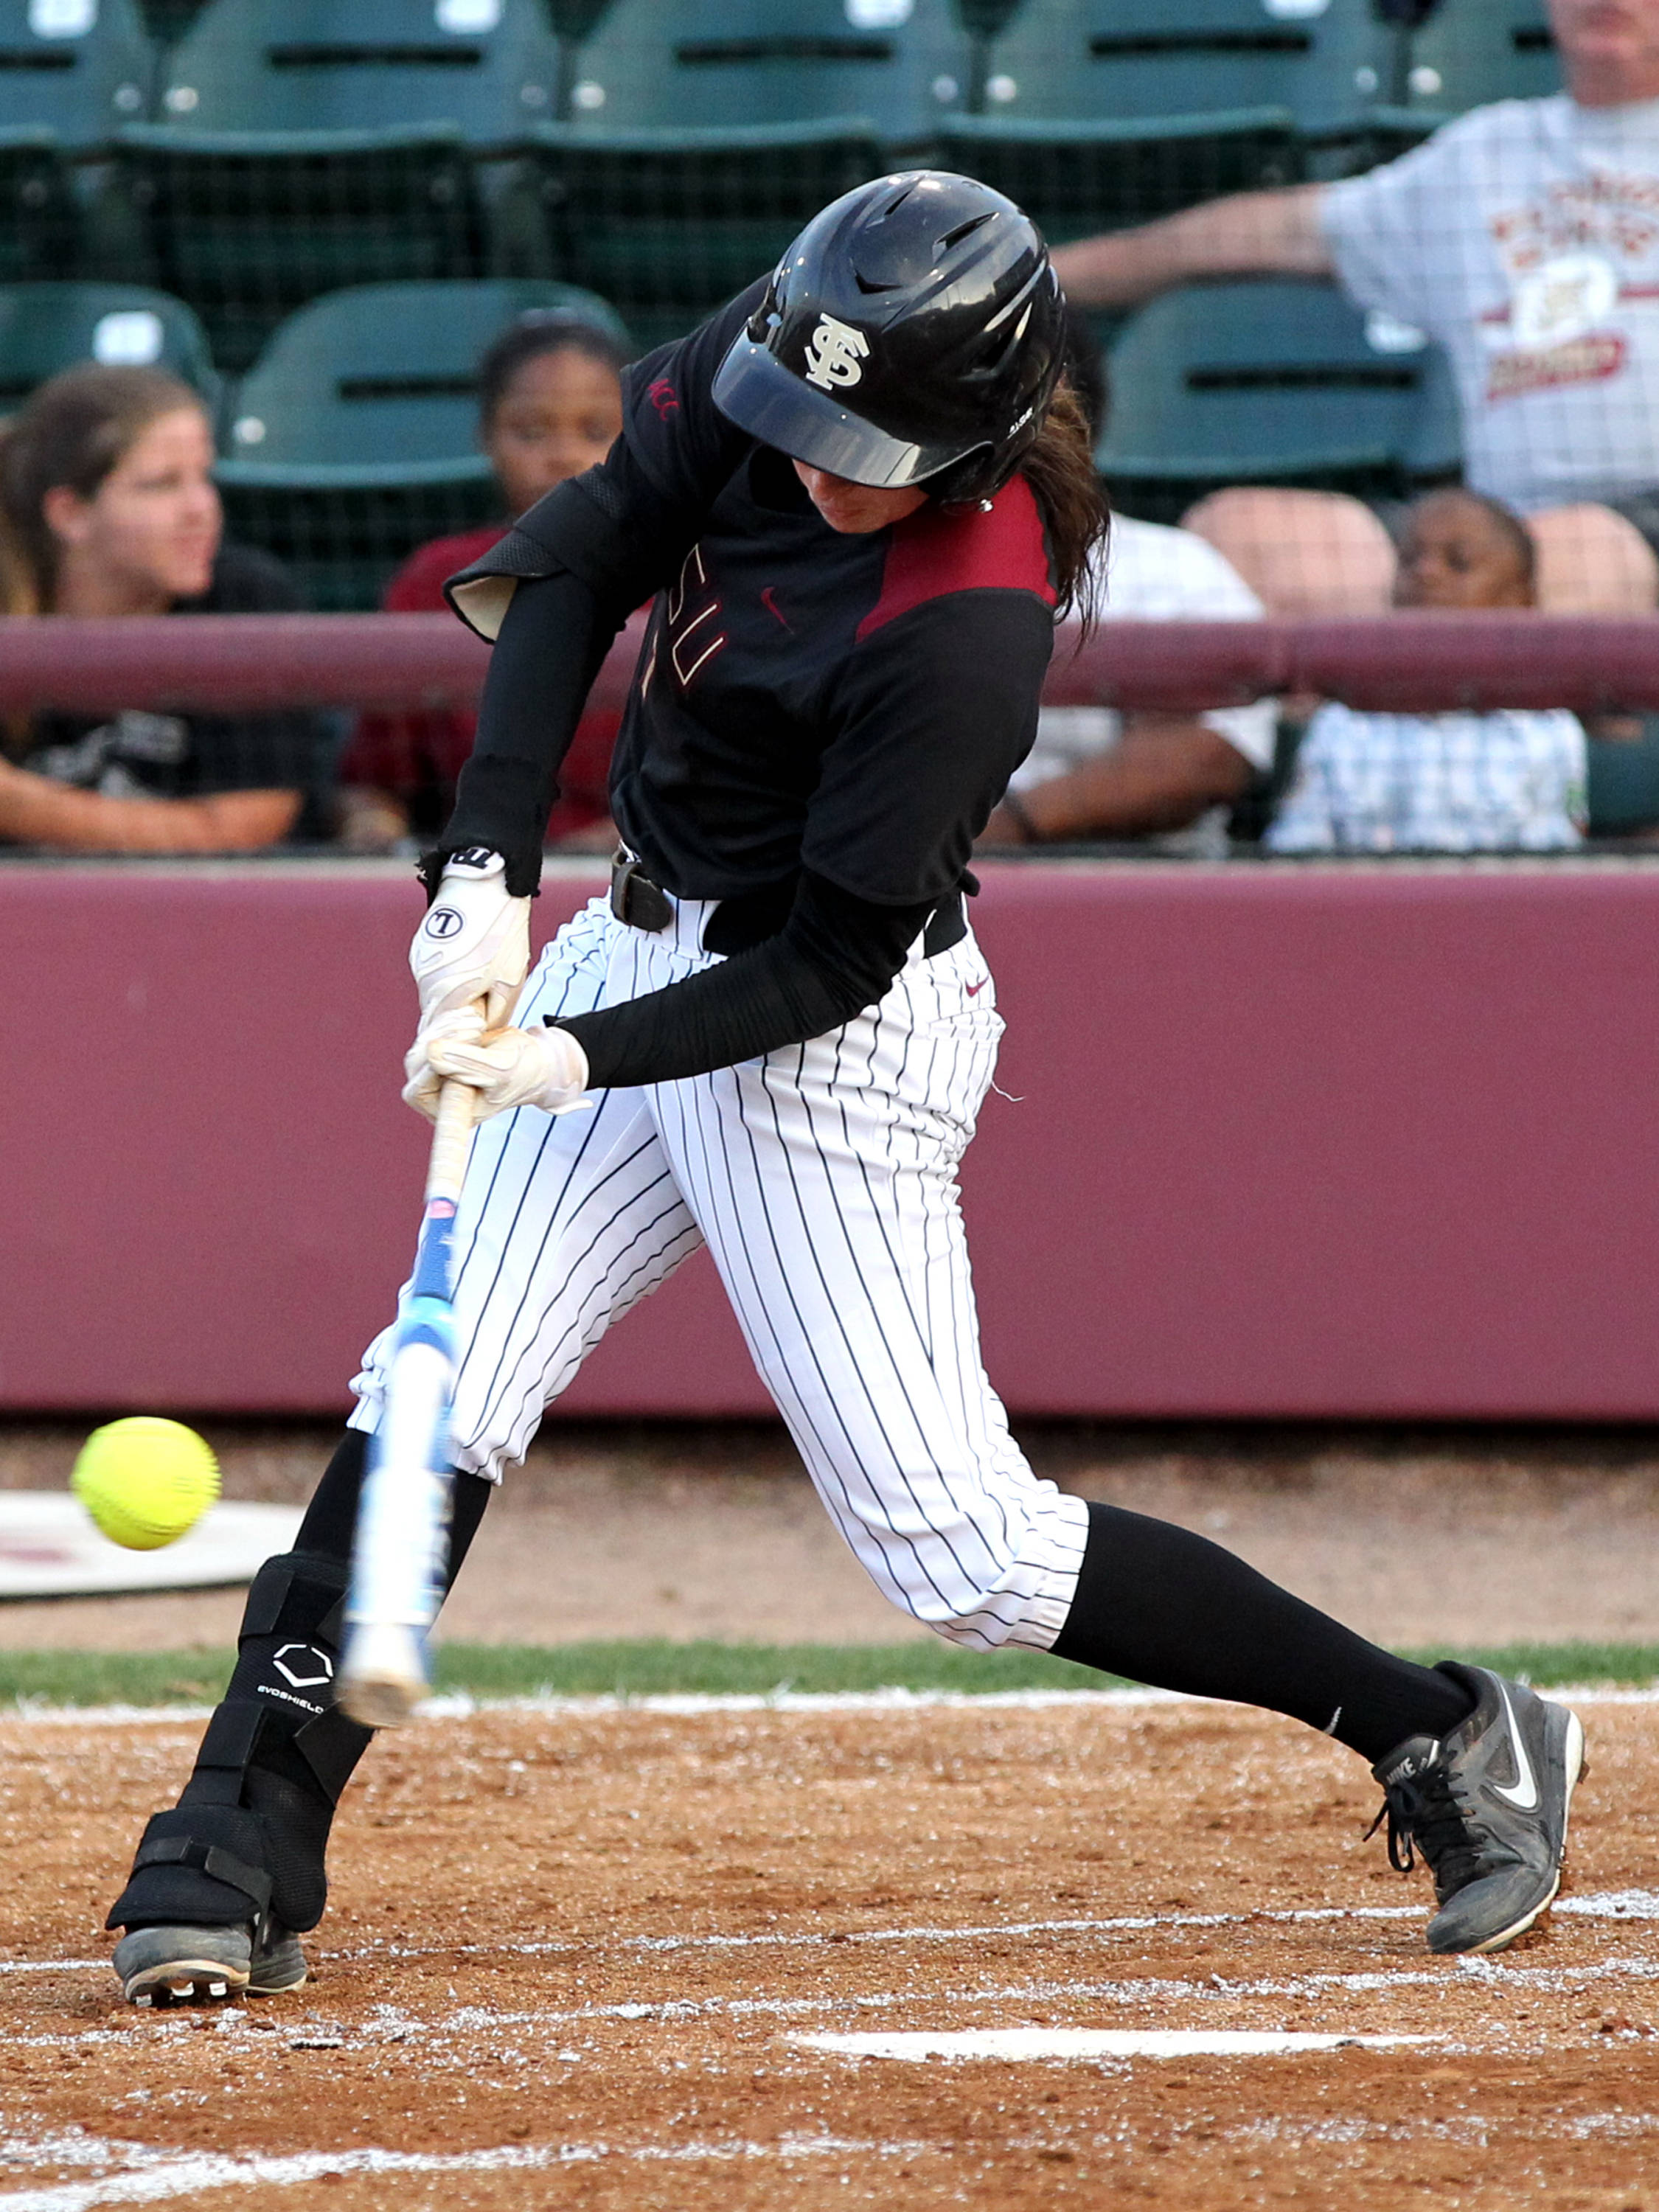 Maddie O' Brien, FSU vs Virginia, 04/13/13 . (Photo by Steve Musco)